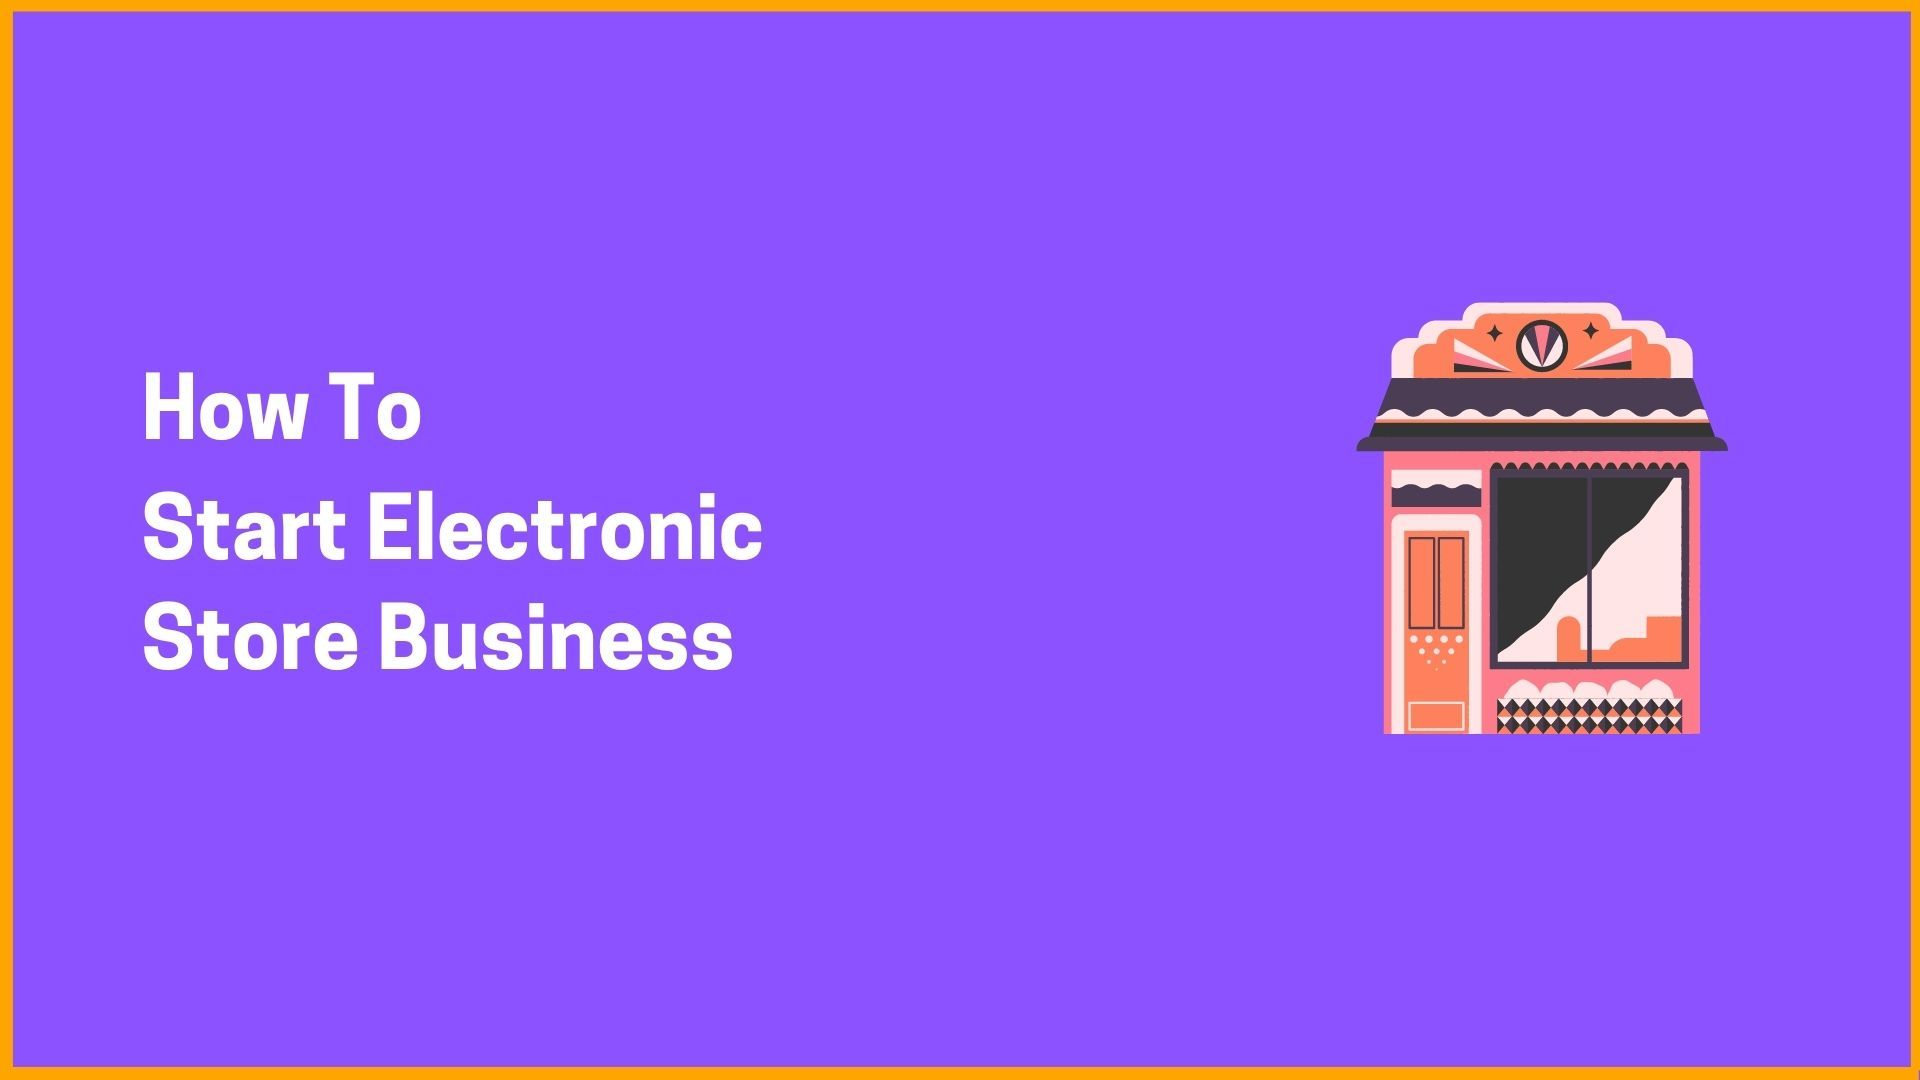 How To Start Electronic Store Business